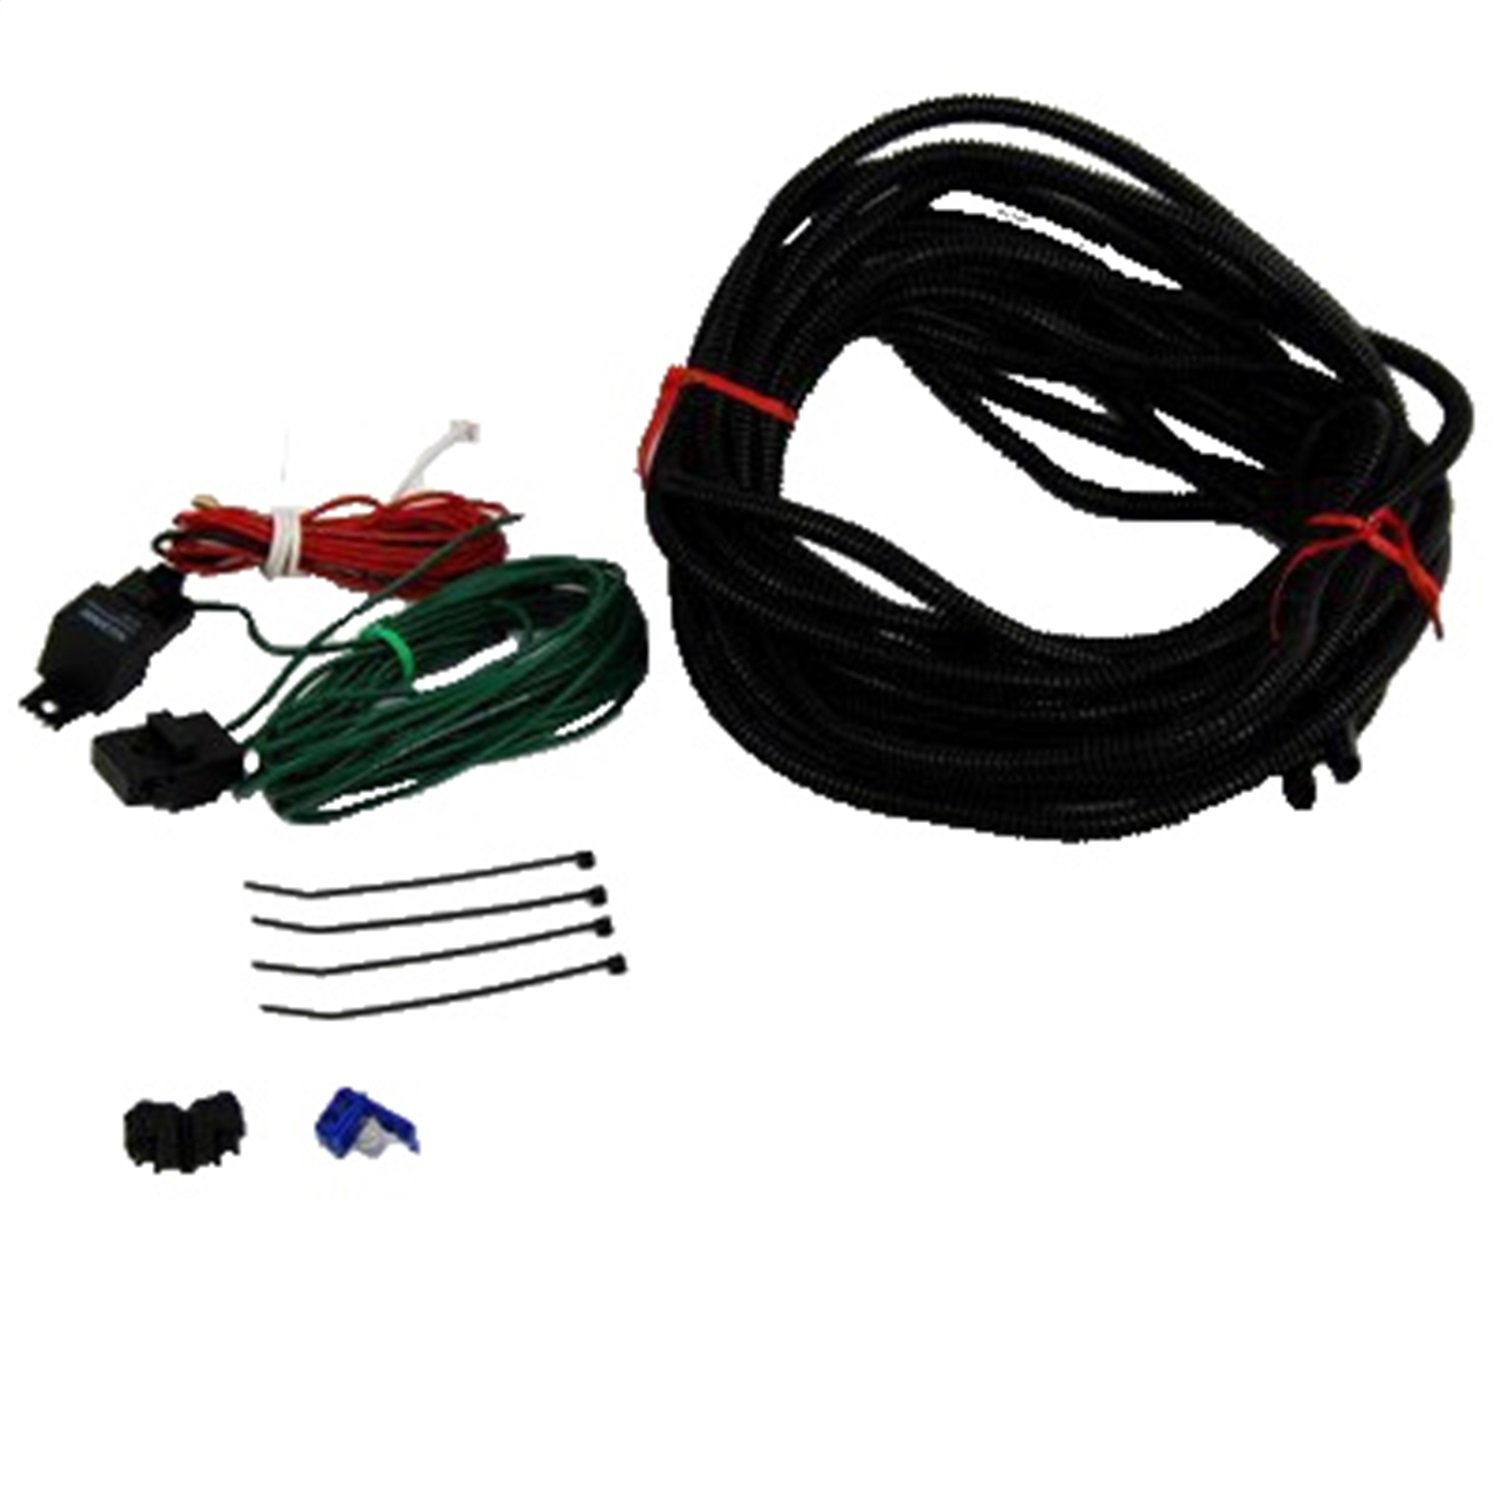 Superb Amazon Com Kc Hilites 63091 Lamp Wiring Harness For 2 Backup Lights Wiring Cloud Hisonuggs Outletorg